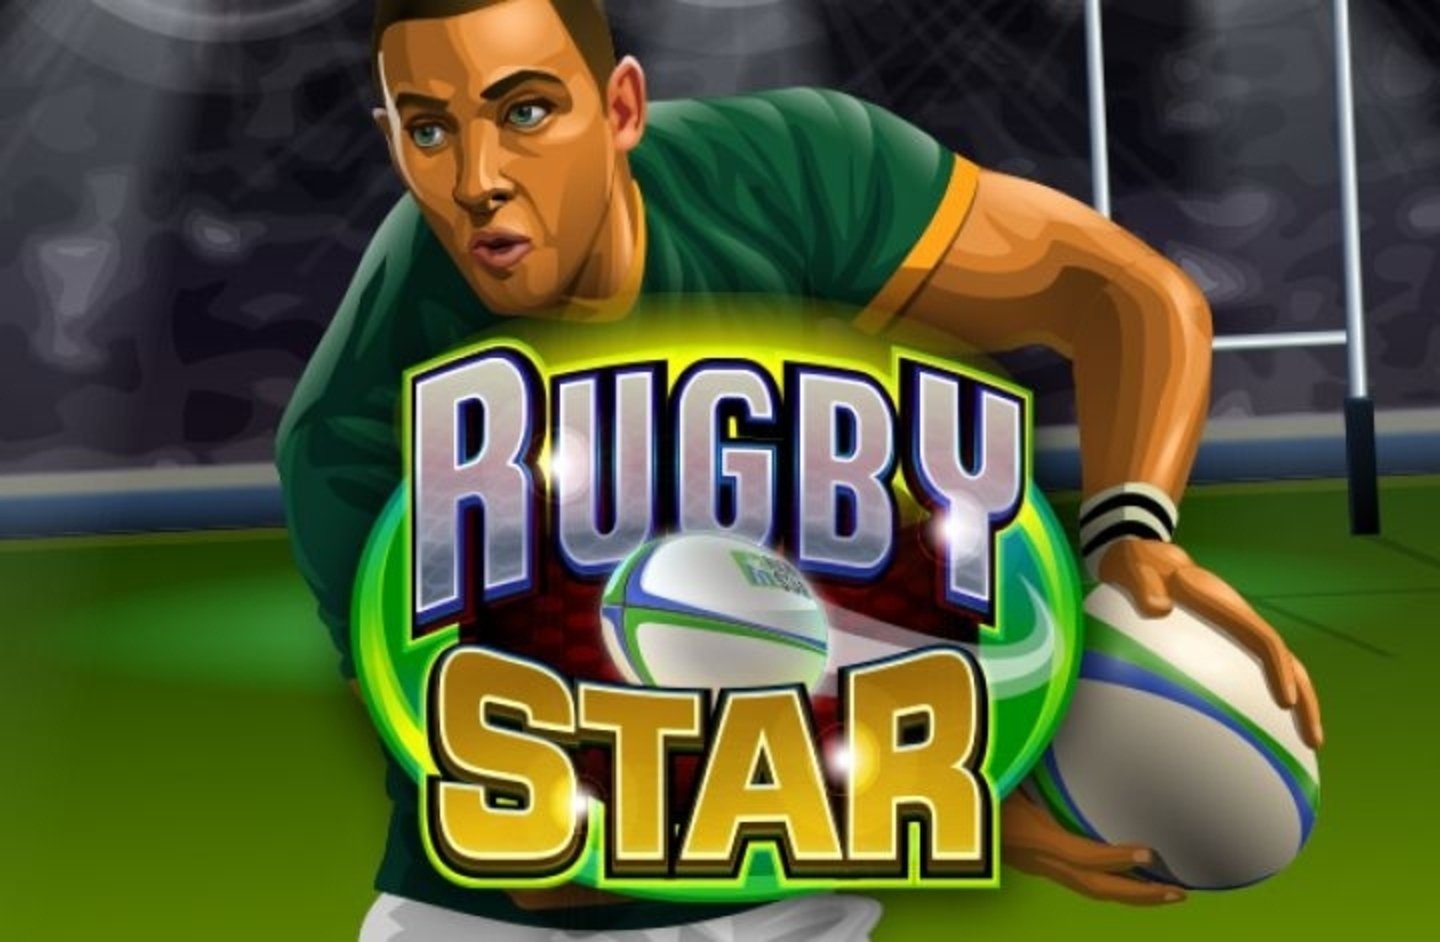 Se Rugby Star Online Slot Demo Game, Microgaming